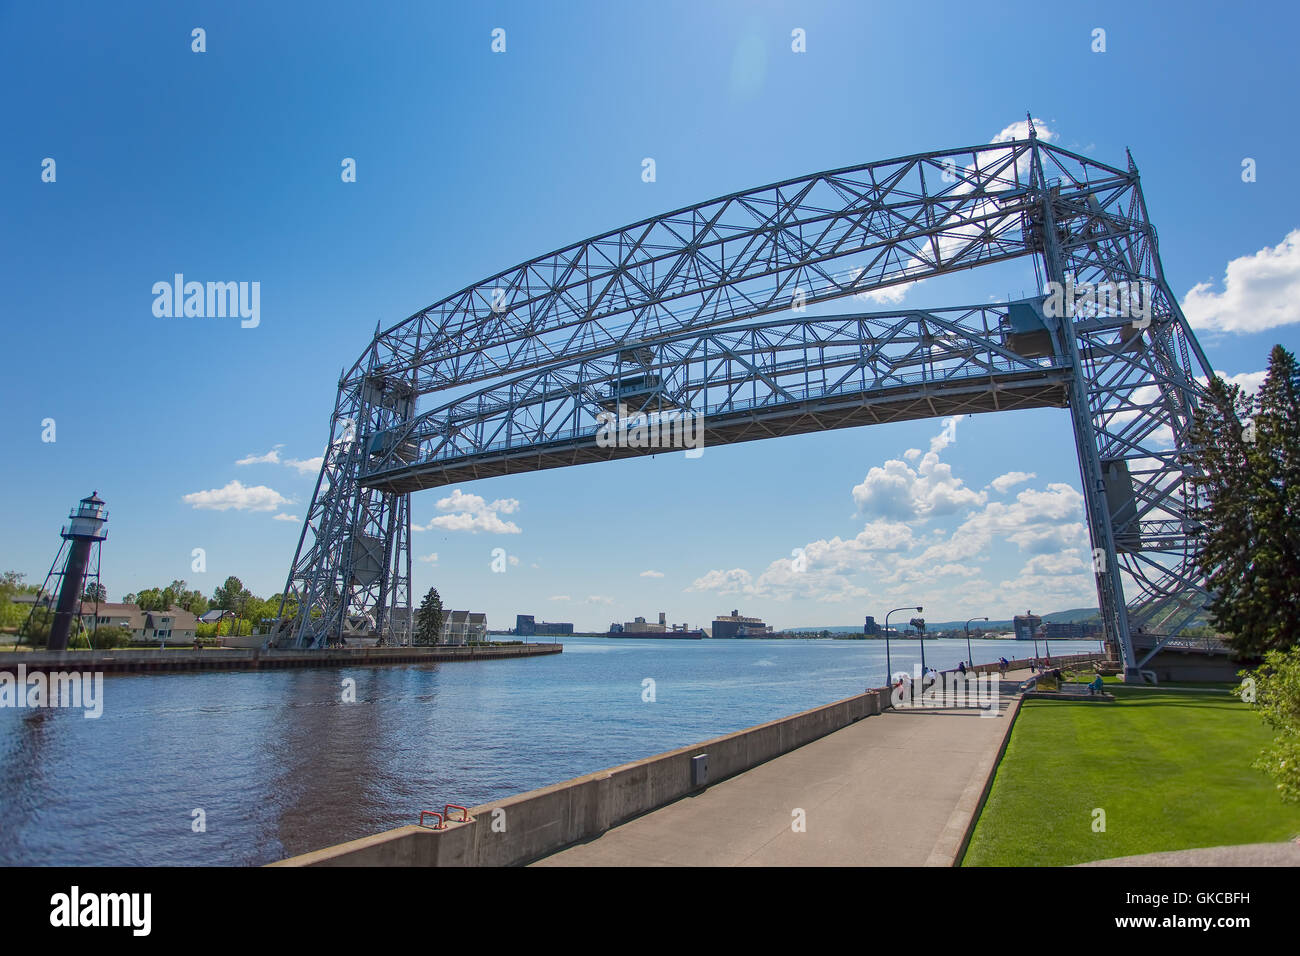 Duluth aerial lift bridge in the raised position over the canal ready for a ship to pass through - Stock Image